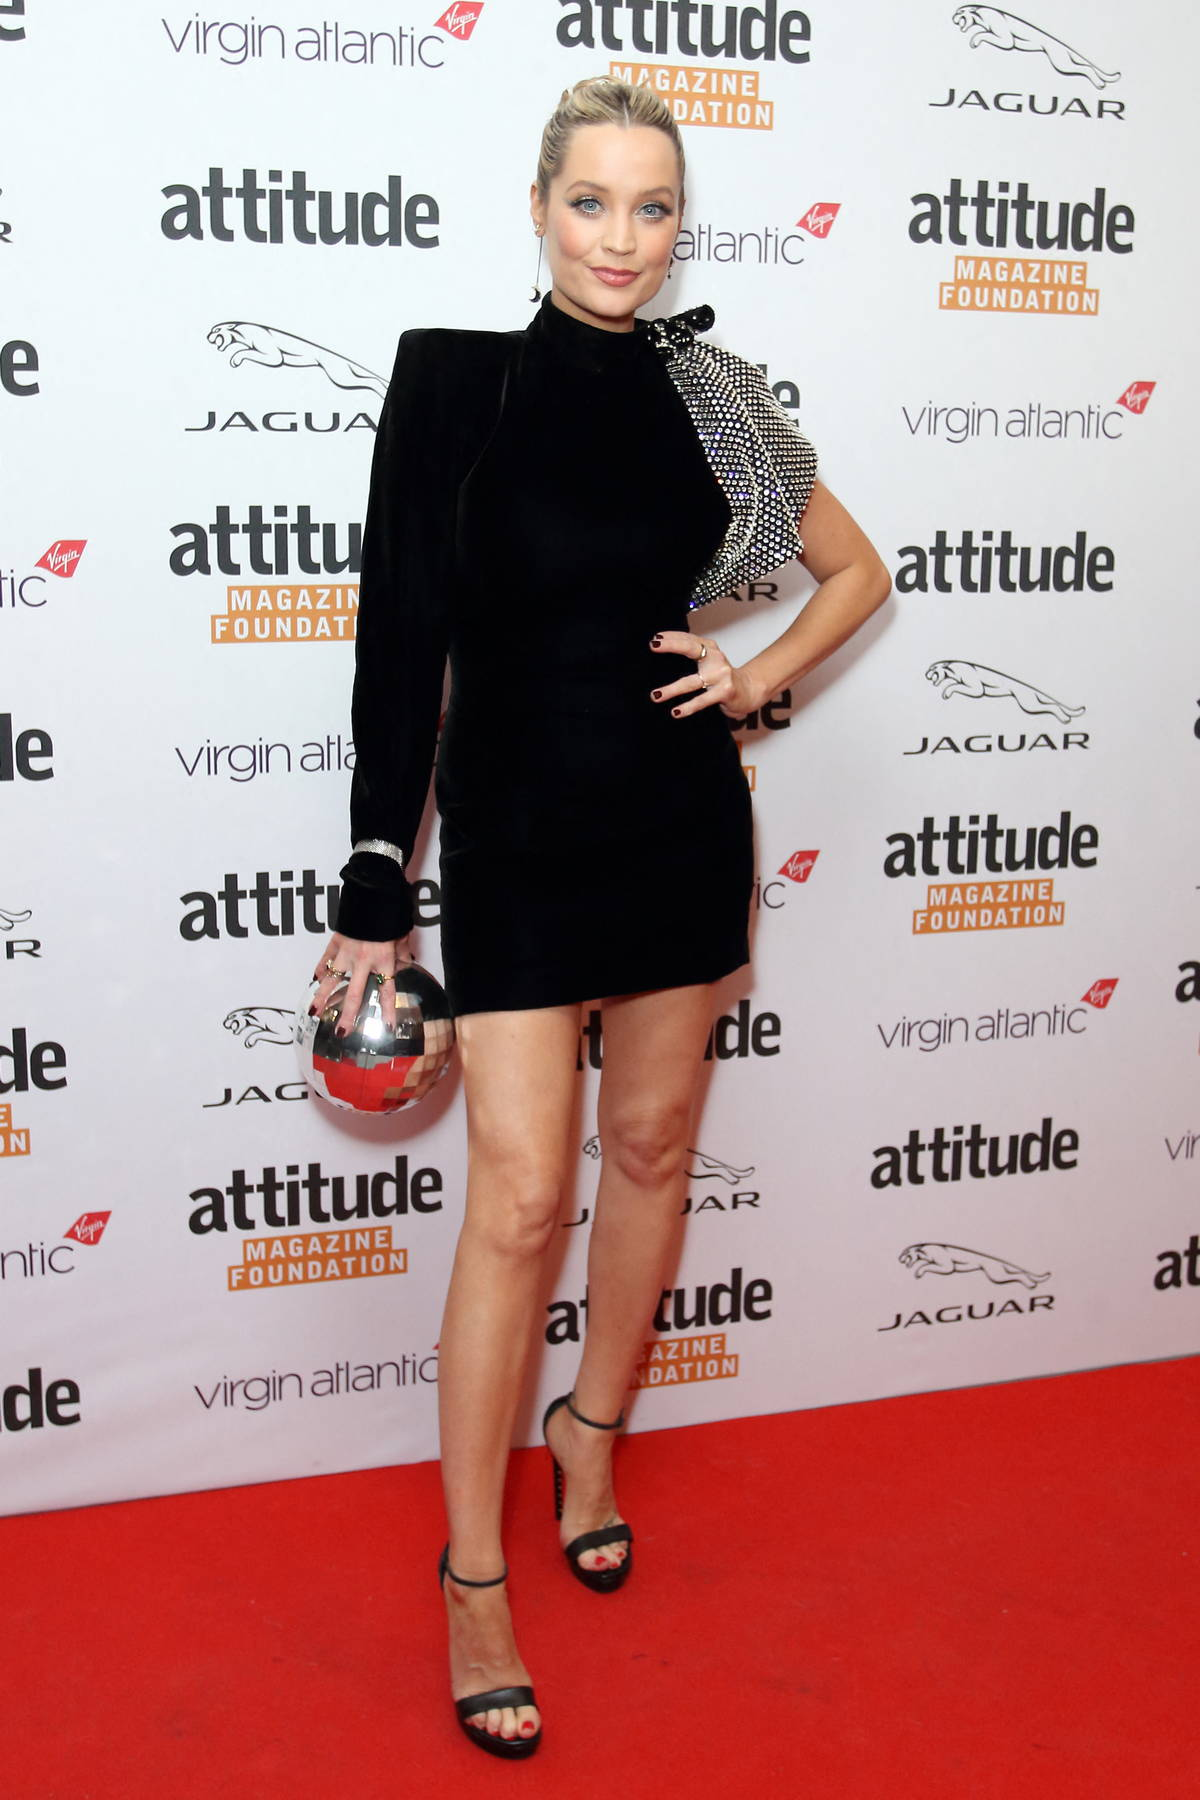 Laura Whitmore attends The Virgin Atlantic Attitude Awards 2021 at The Roundhouse in London, UK